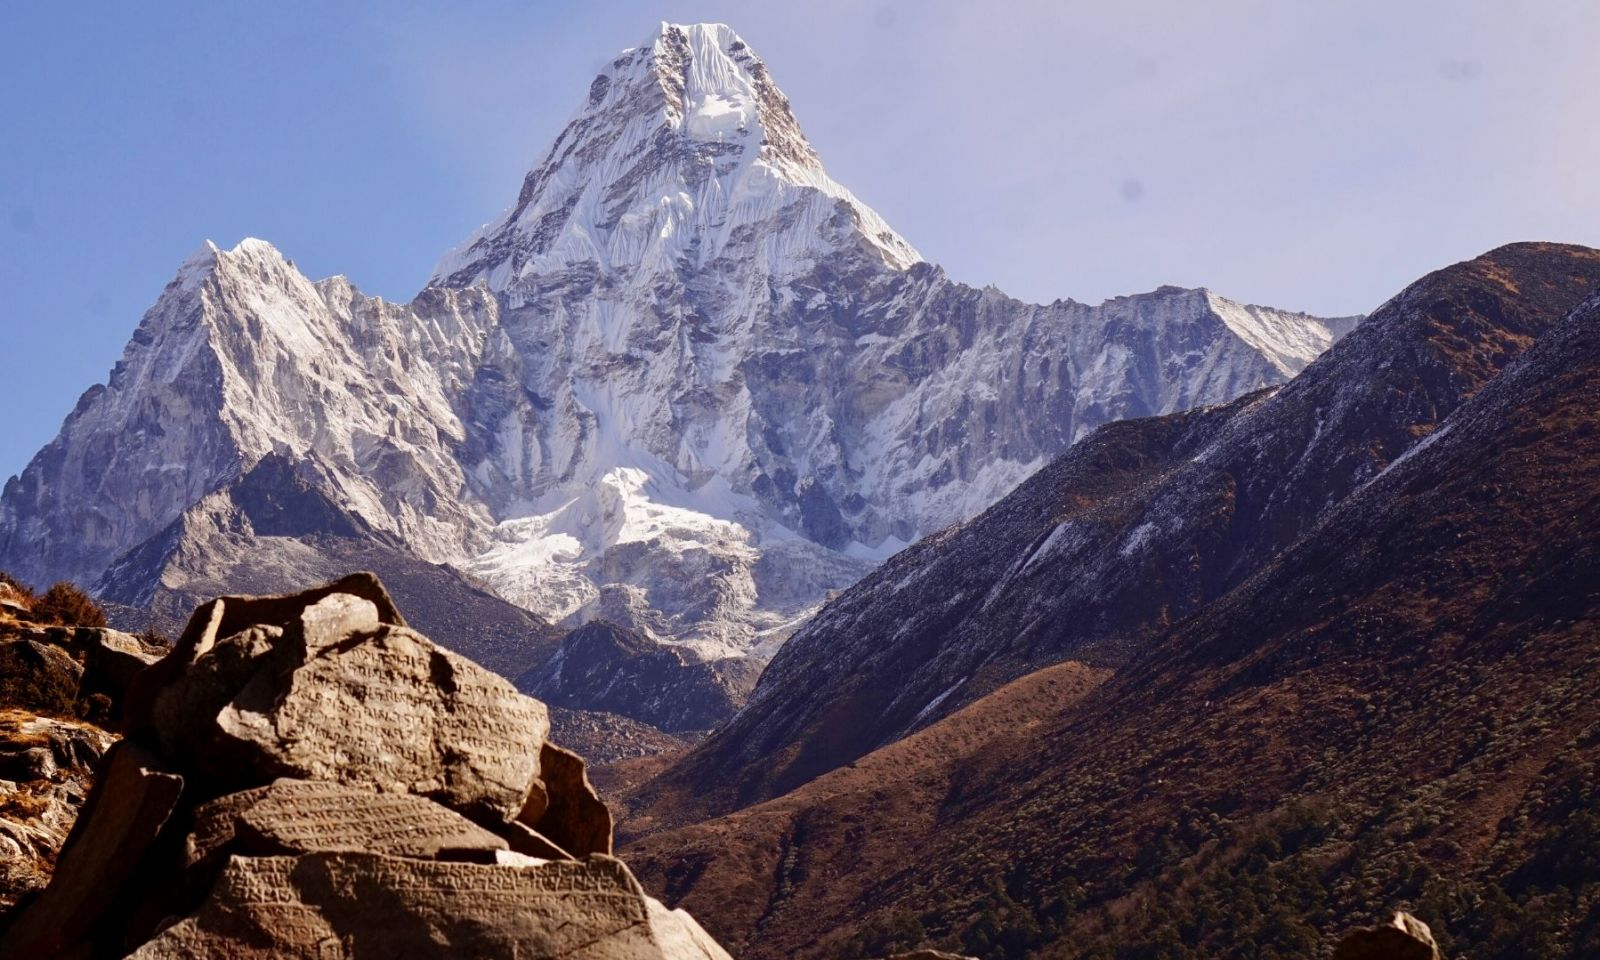 View of Ama Dablam from near Everest Base Camp, Nepal.